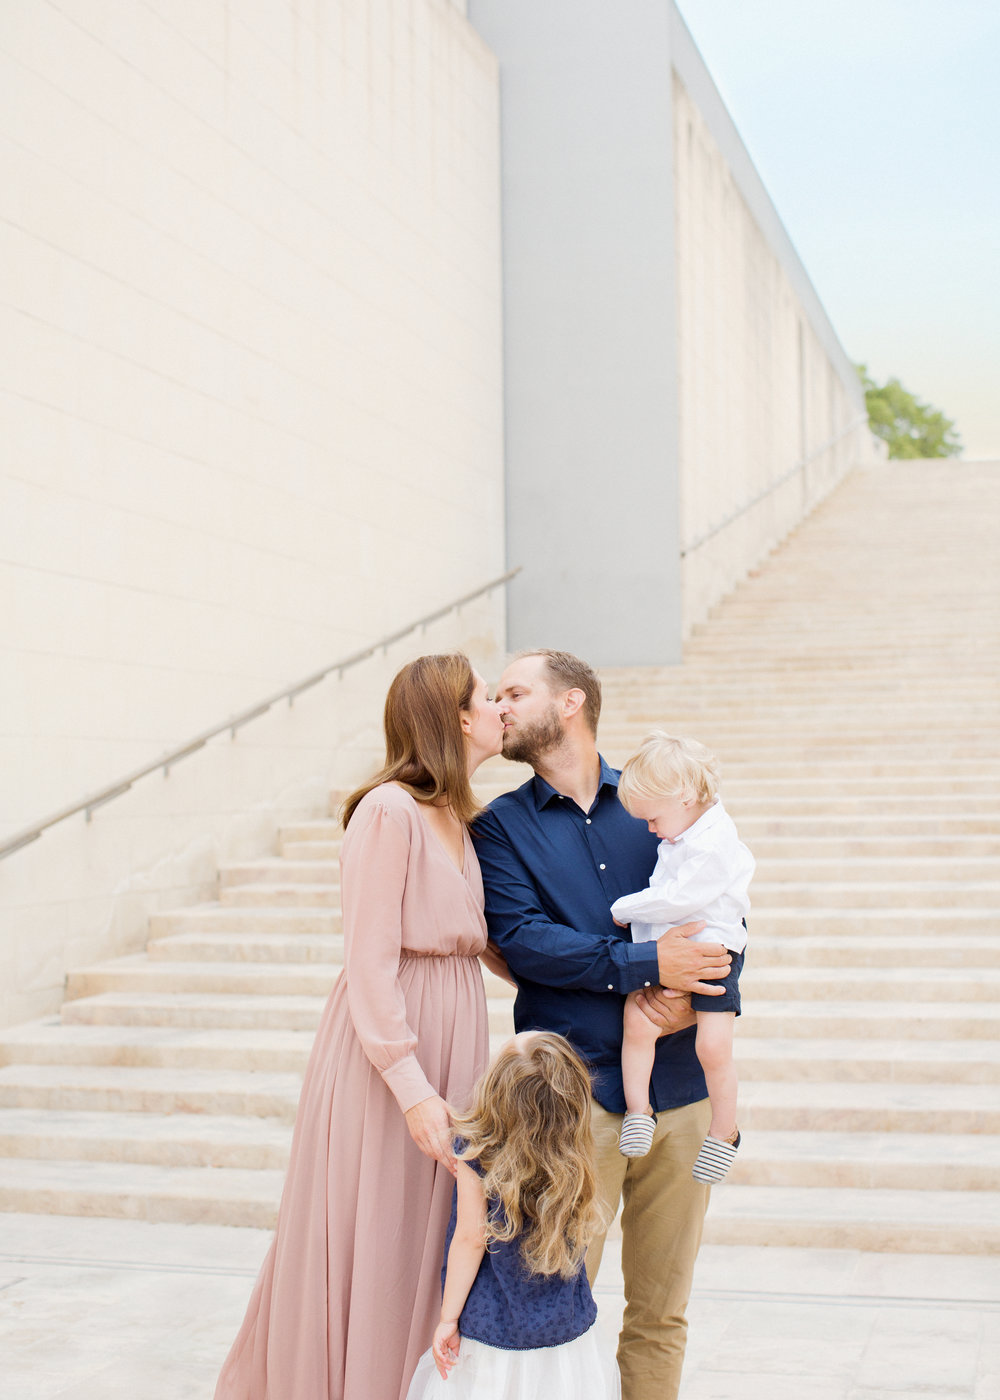 valletta photoshoot, malta family photo shoot, natural light photographer, relaxed photo session, family of four, swedish photographer malta,